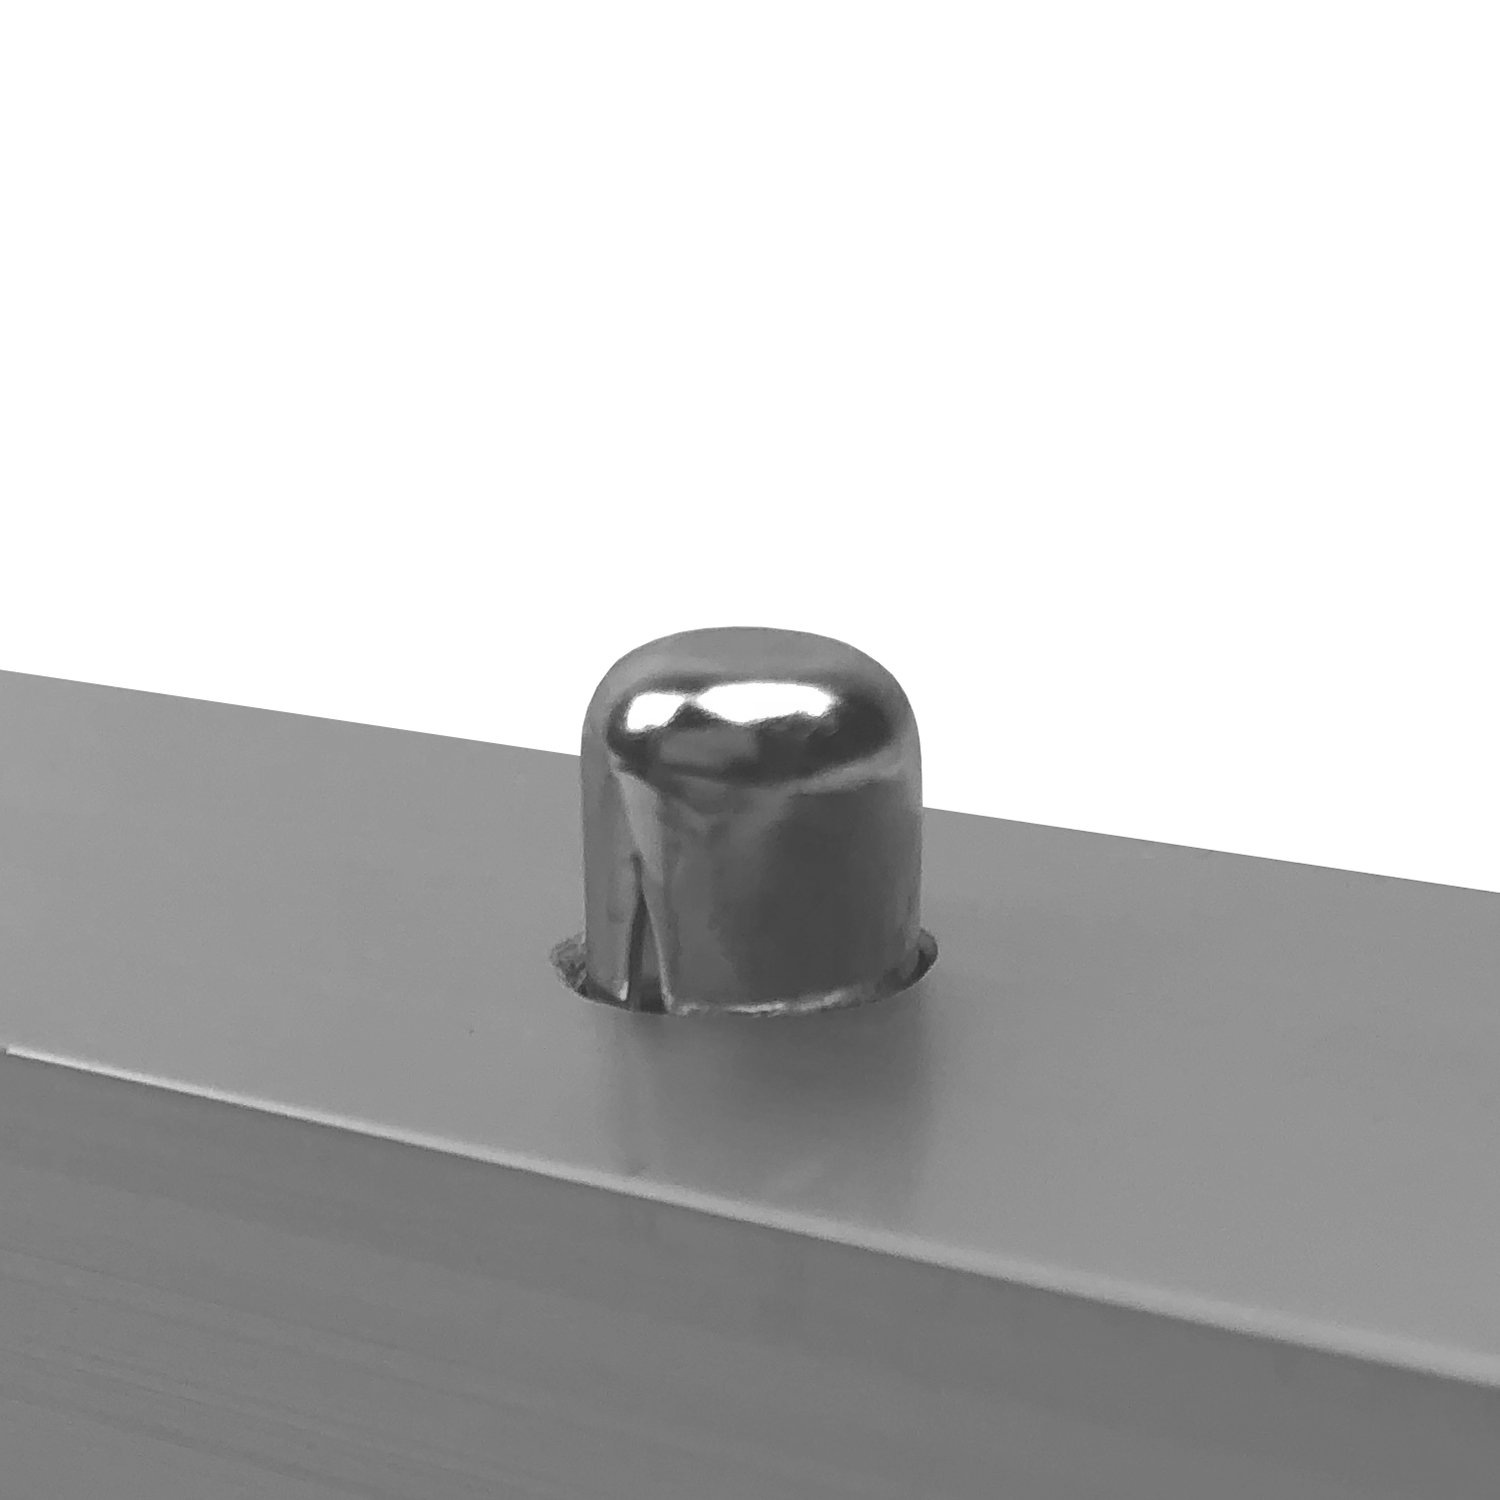 Bold Ivy Canoe Stabilizer Extension Arm - Push Pin